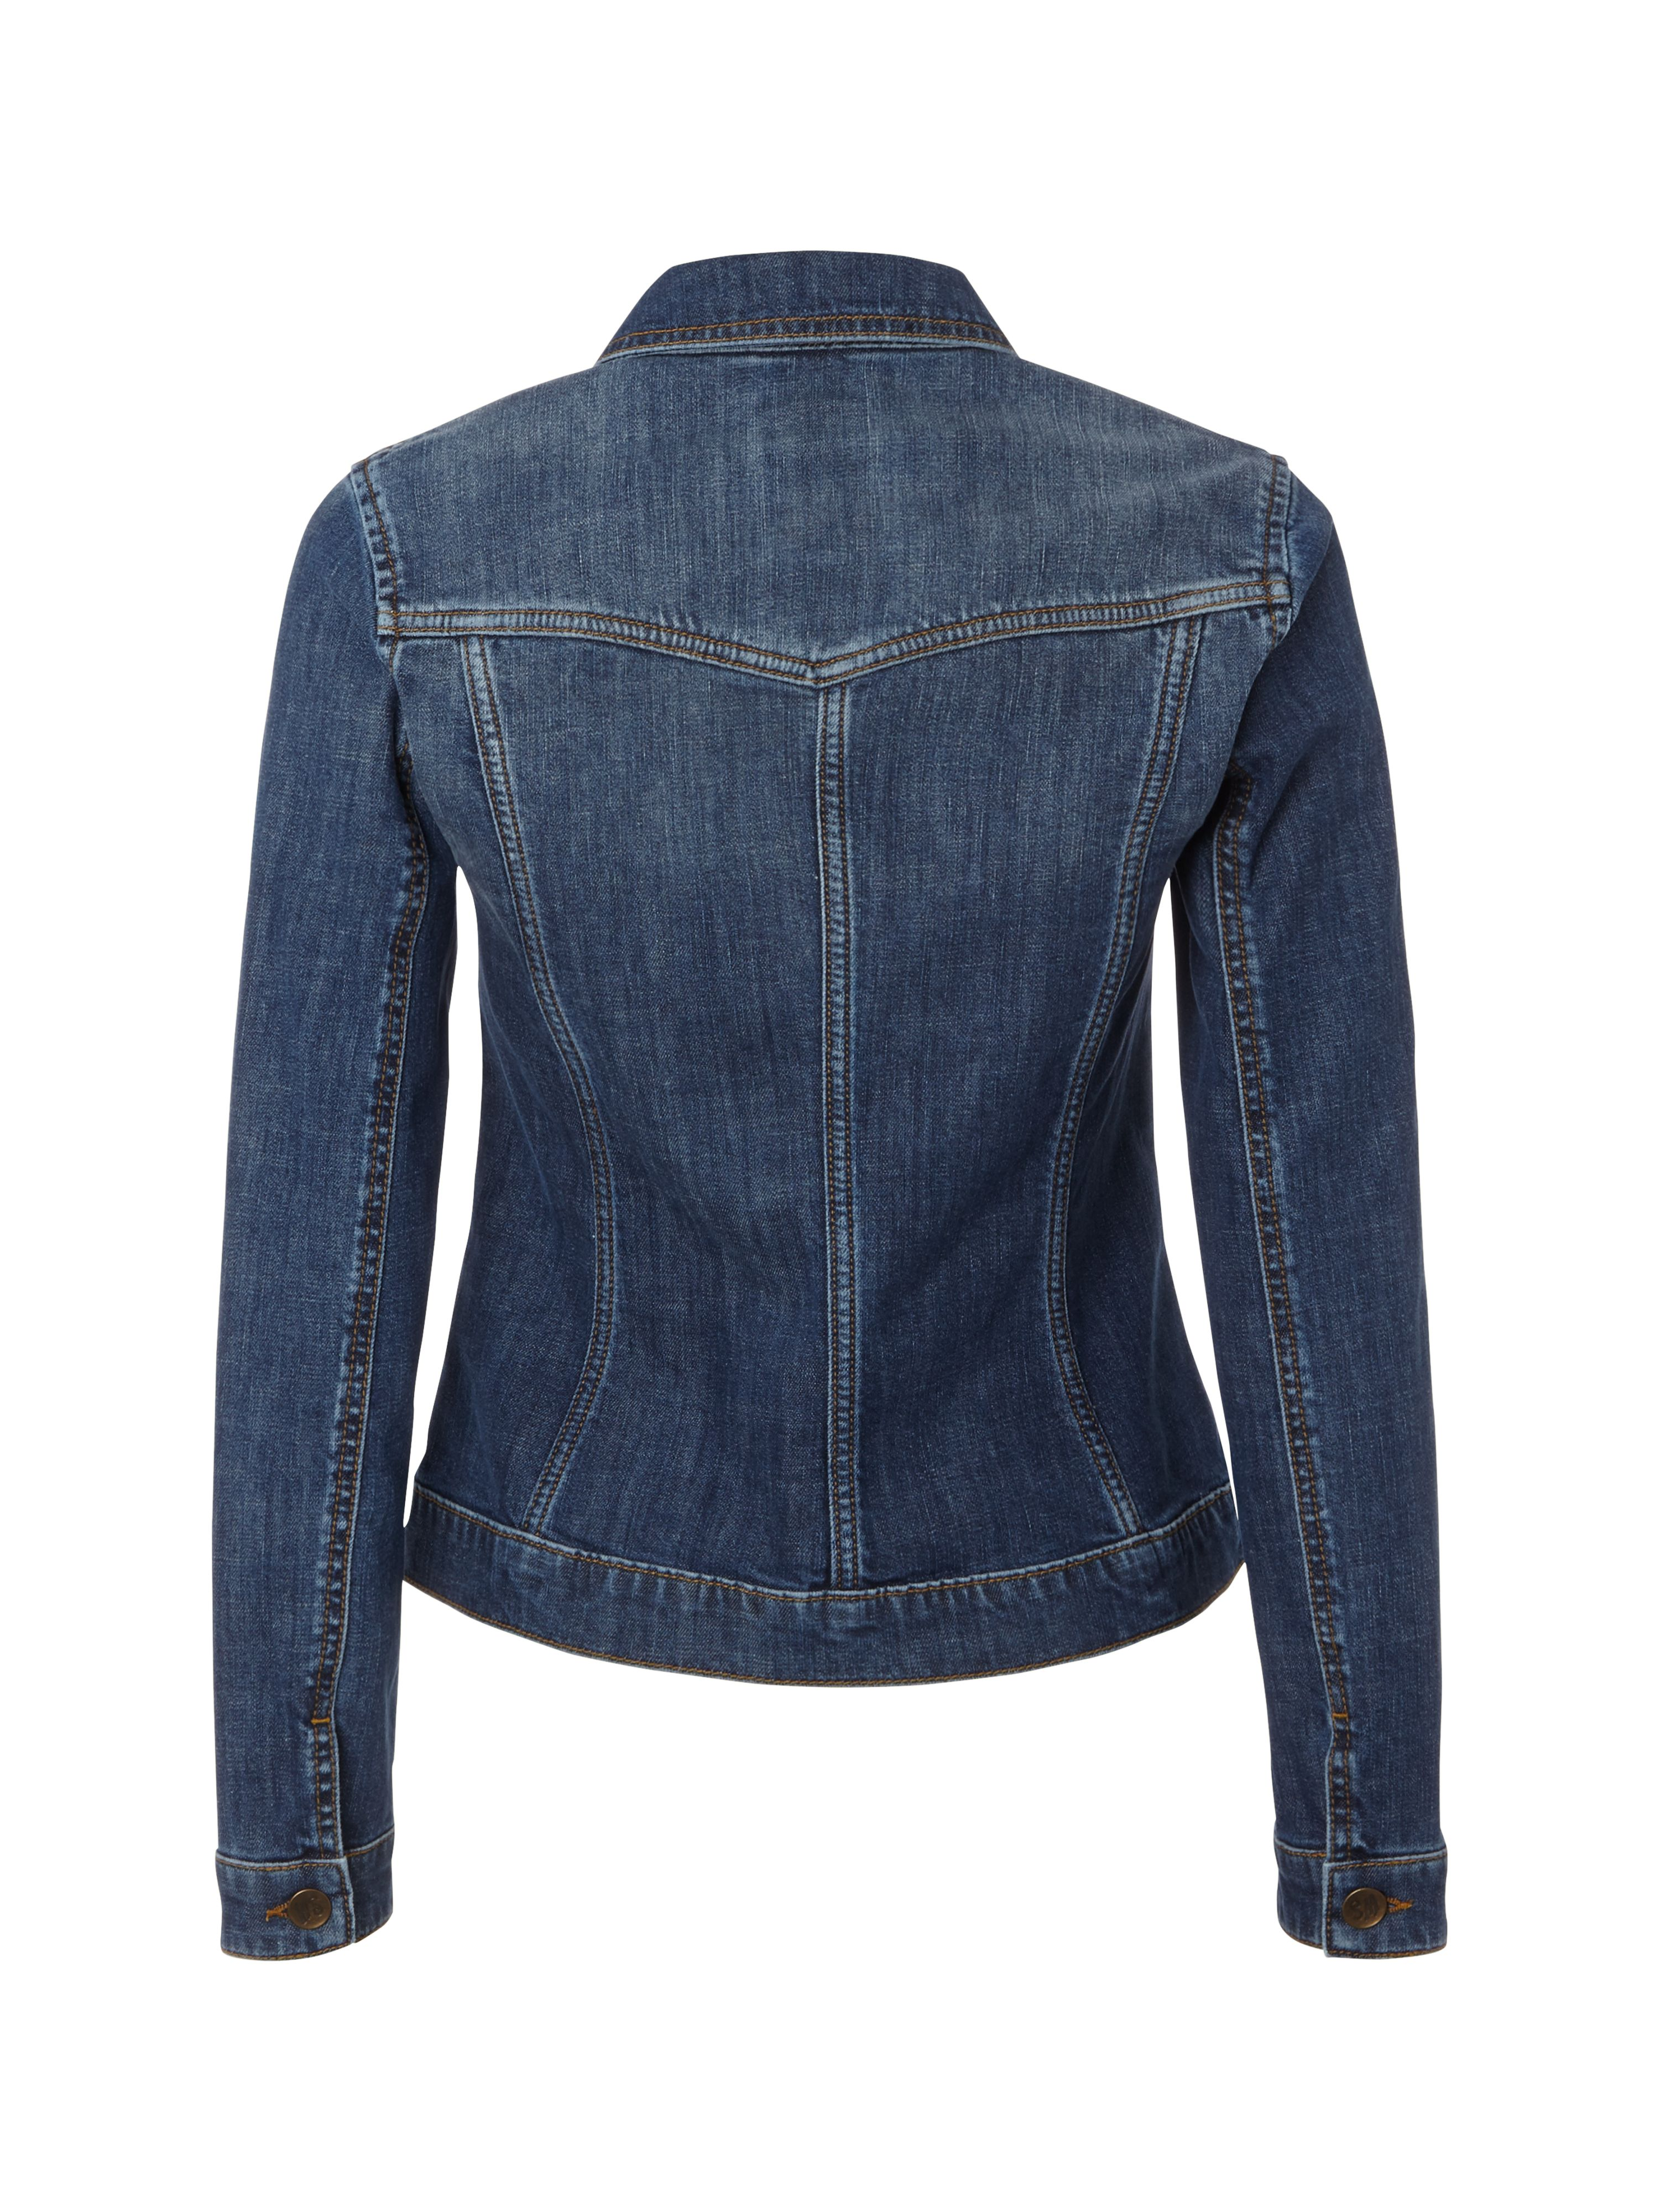 Evangeline denim jacket